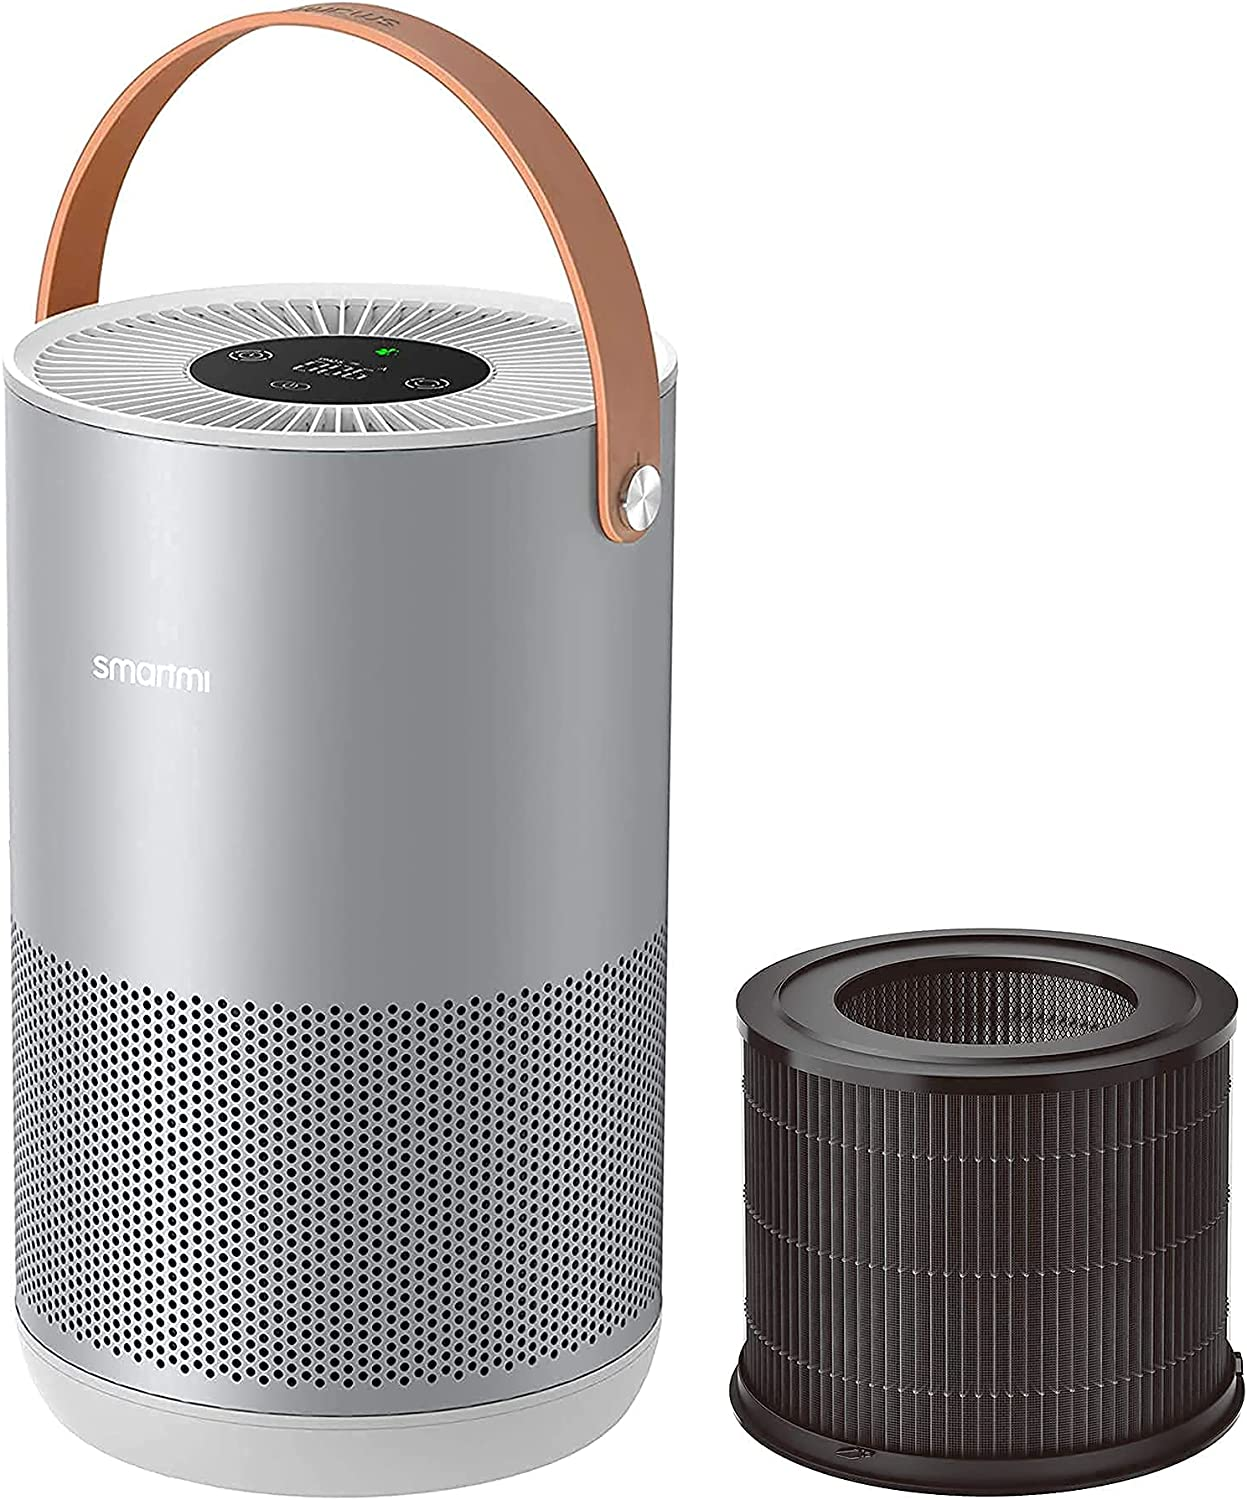 smartmi Cheap sale Ranking TOP19 Air Purifiers for Home Portable HEPA and Bund Filter H13